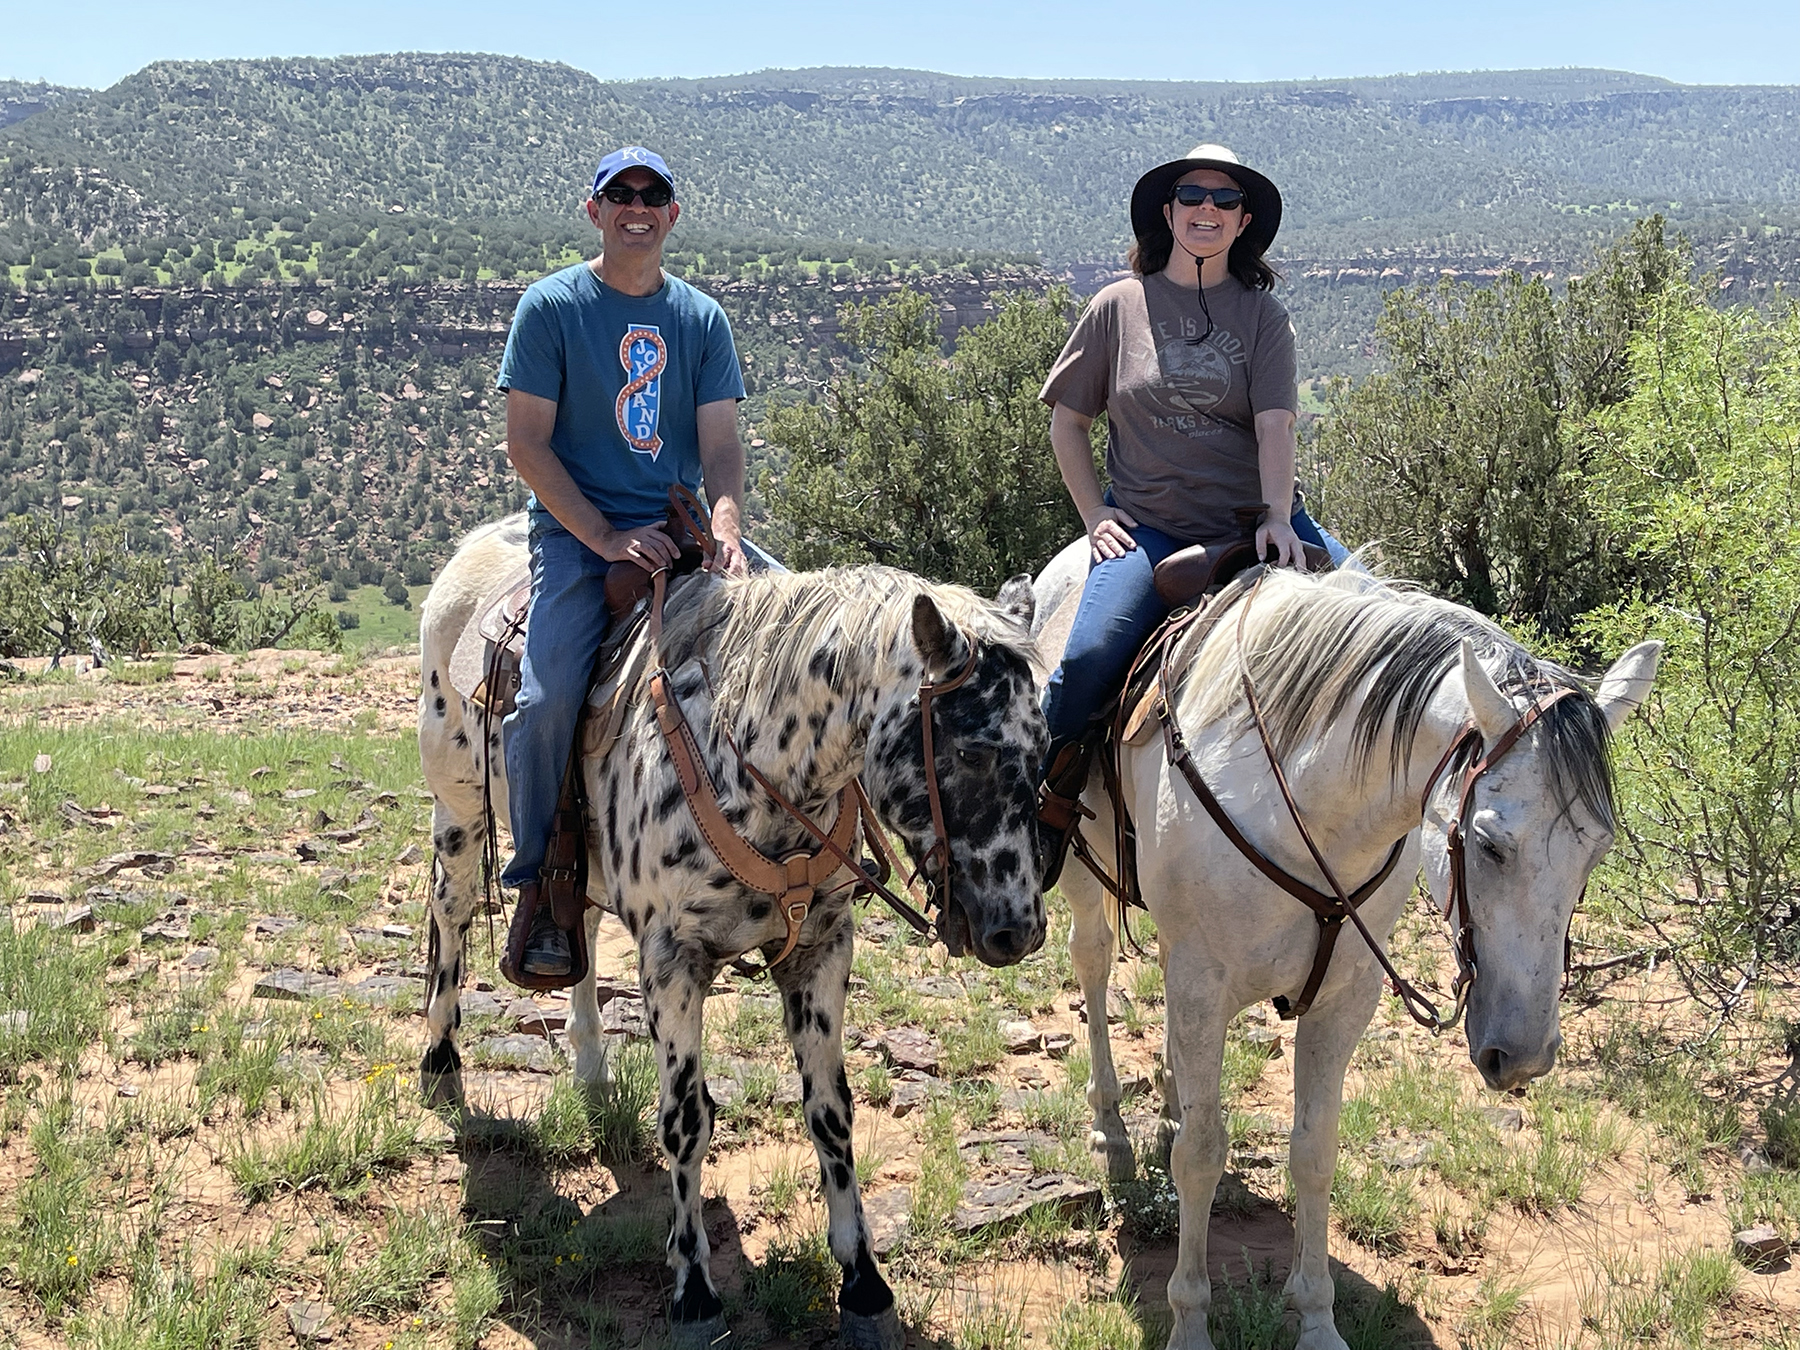 The author and her husband exploring some of the 14,000 acres at Canyon Madness Ranch in northeastern New Mexico. The ranch has a full equestrian program and staff can customize an experience to guests' experience level. Photo by MeLinda Schnyder.